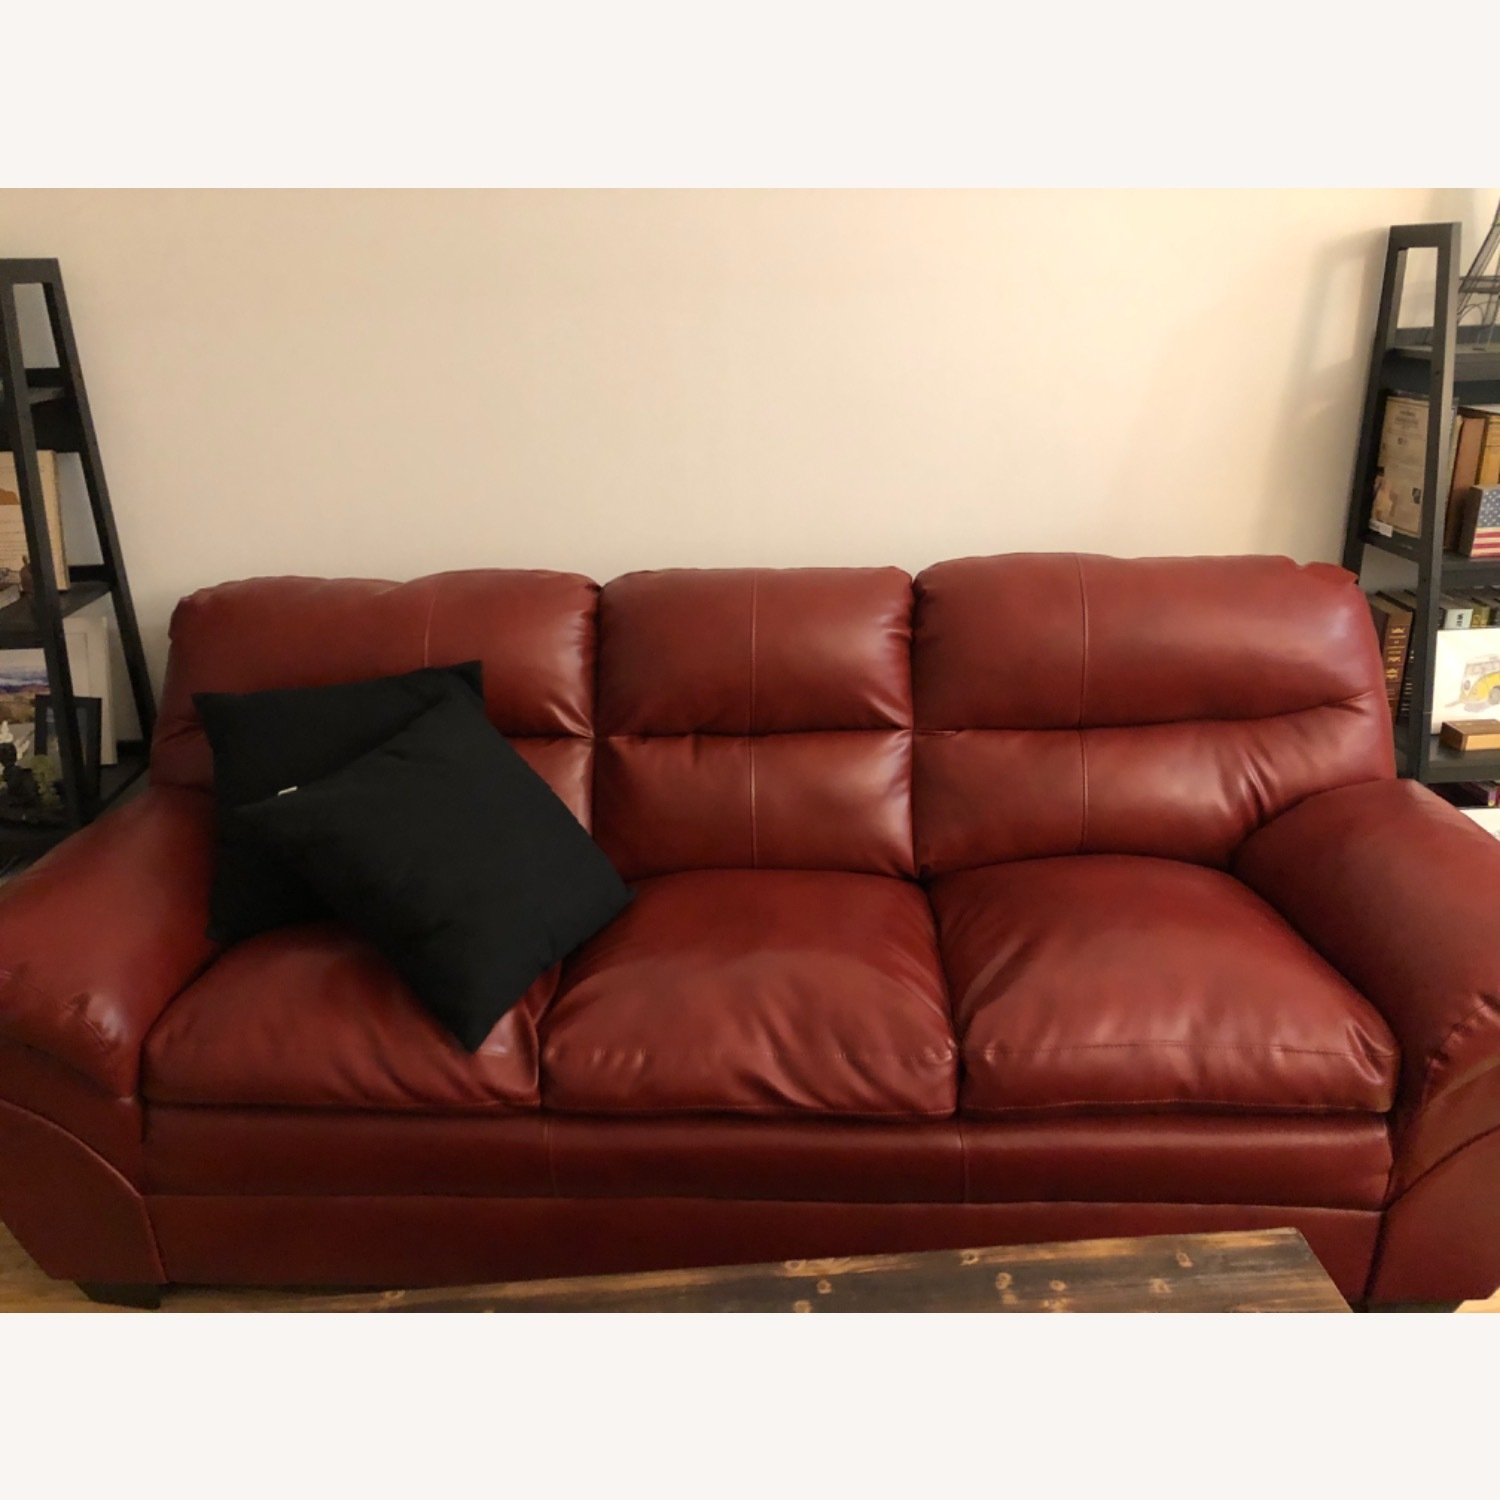 Claudio Rayes Red Couch - image-1